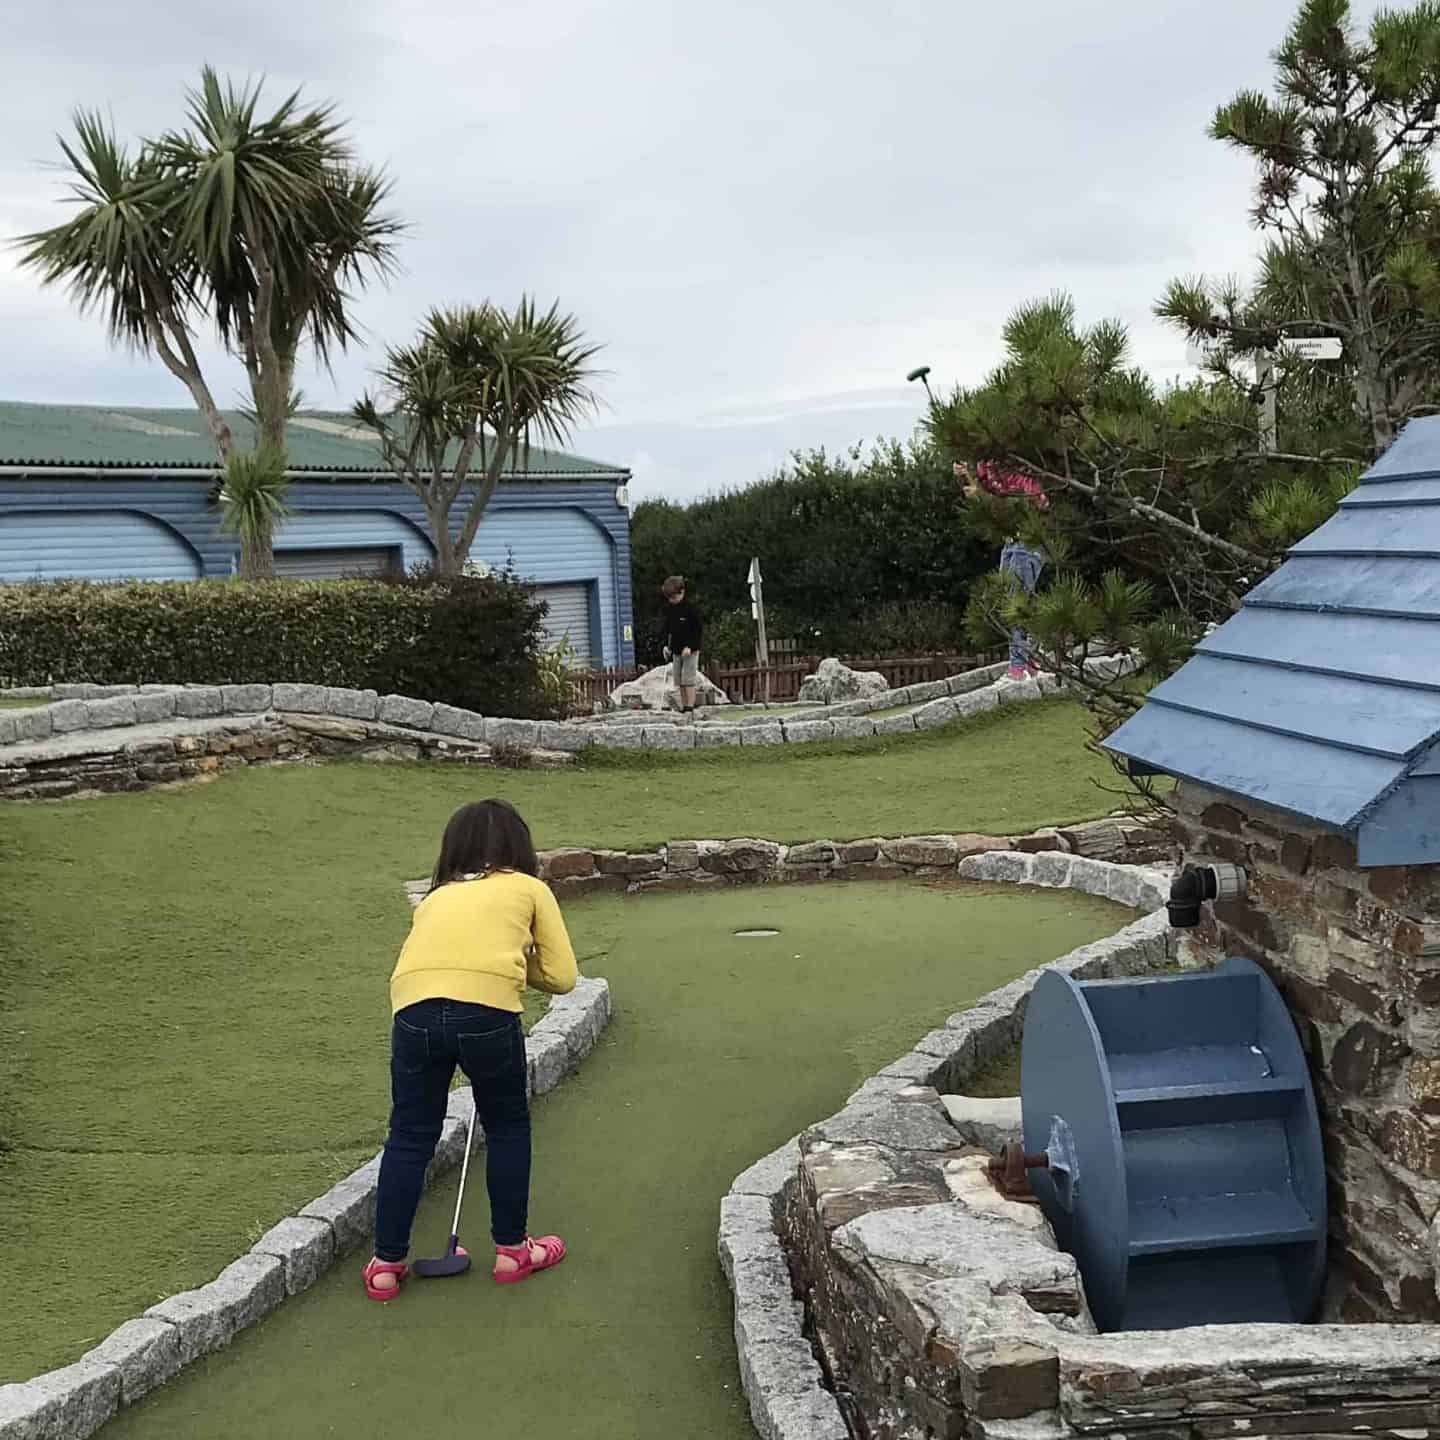 Crazy golf at Holywell Bay Fun Park, Cornwall